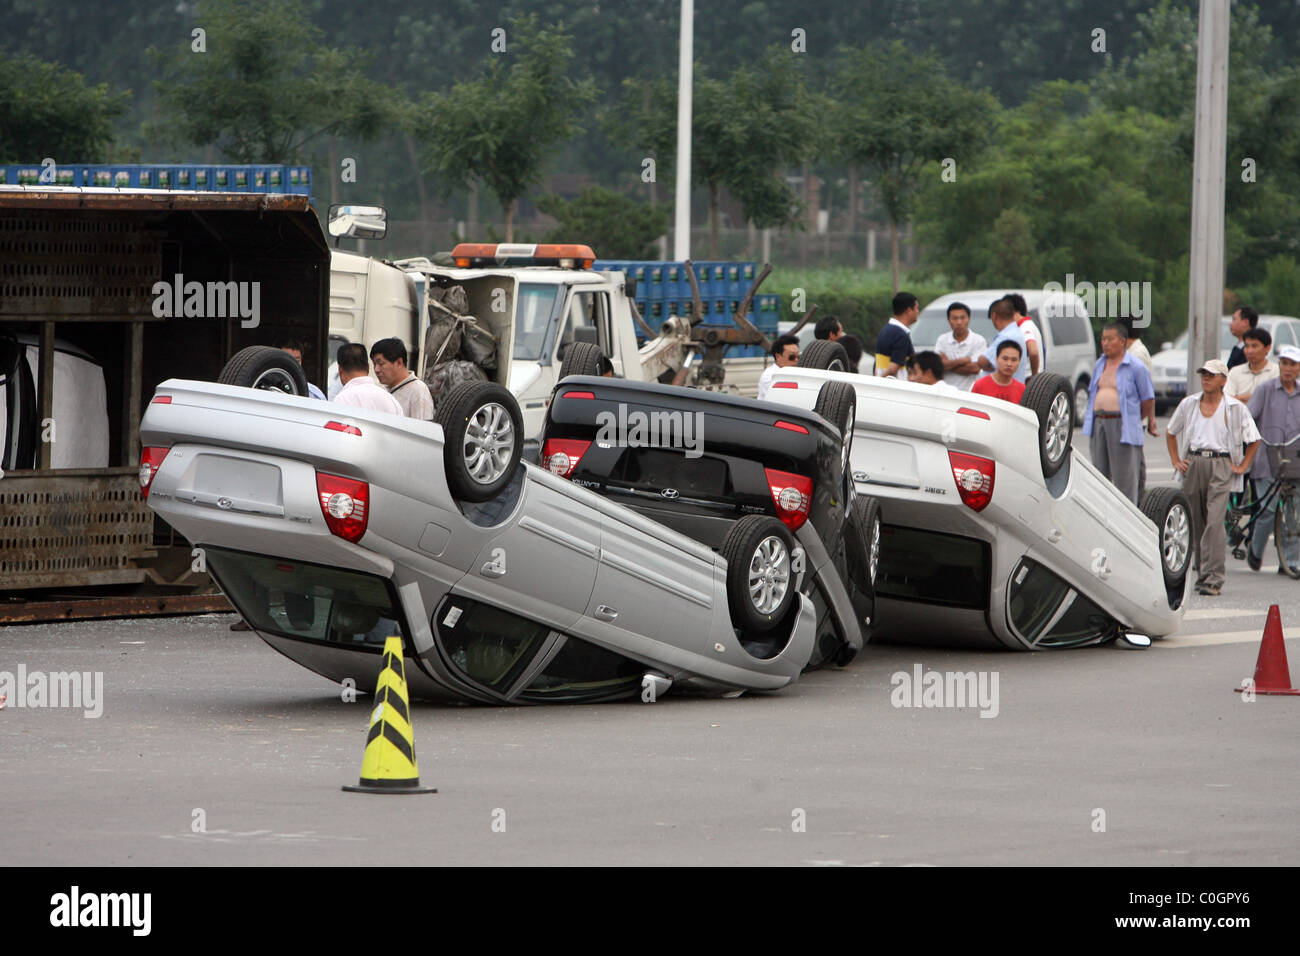 Car carrier flips on junction a haulage truck carrying a fleet of brand new cars flipped